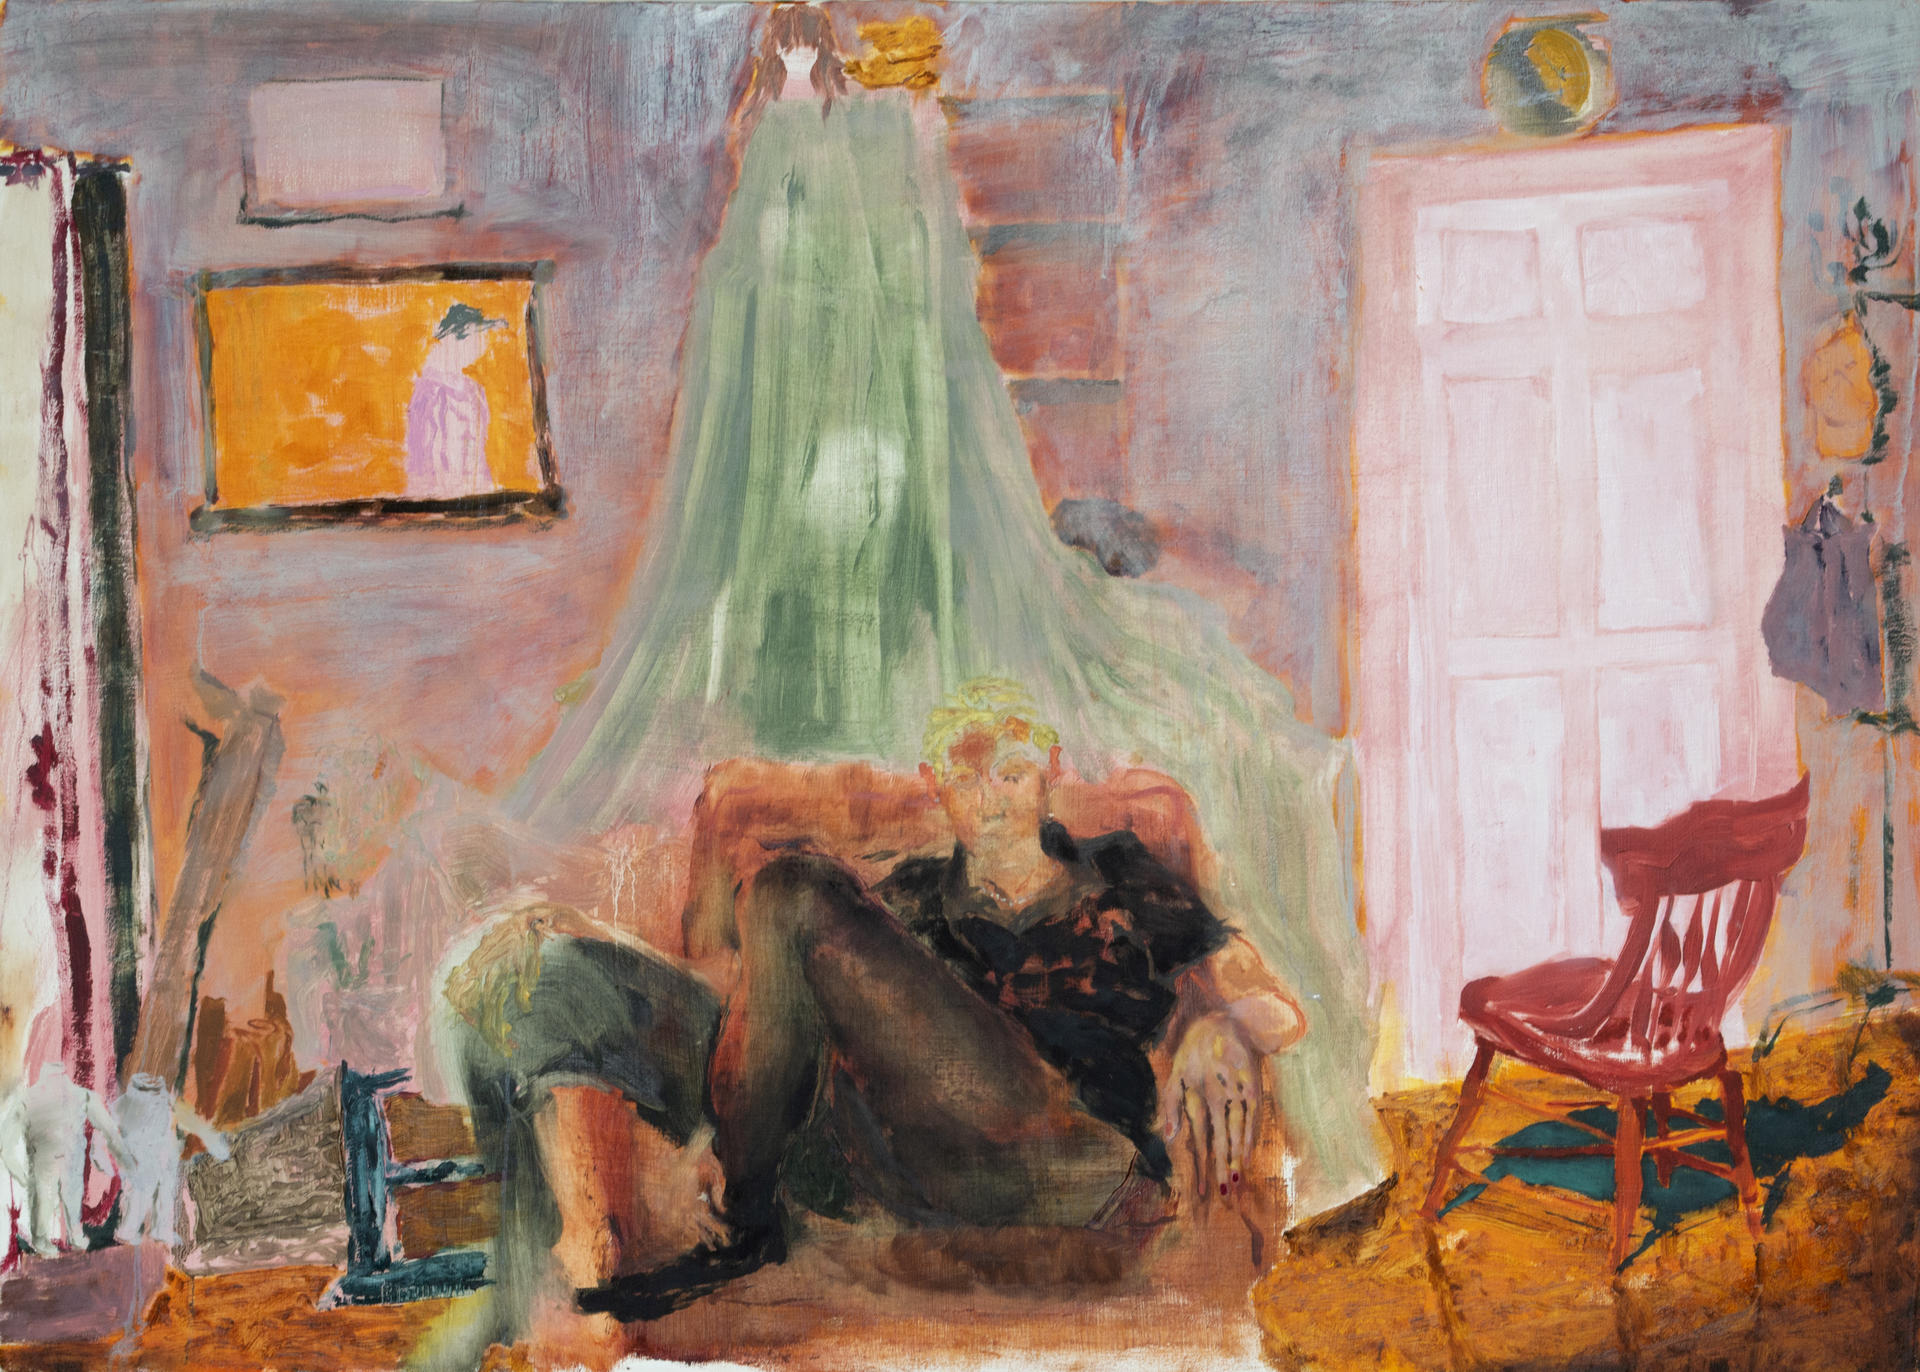 a person seated in a large living room, drenched in light